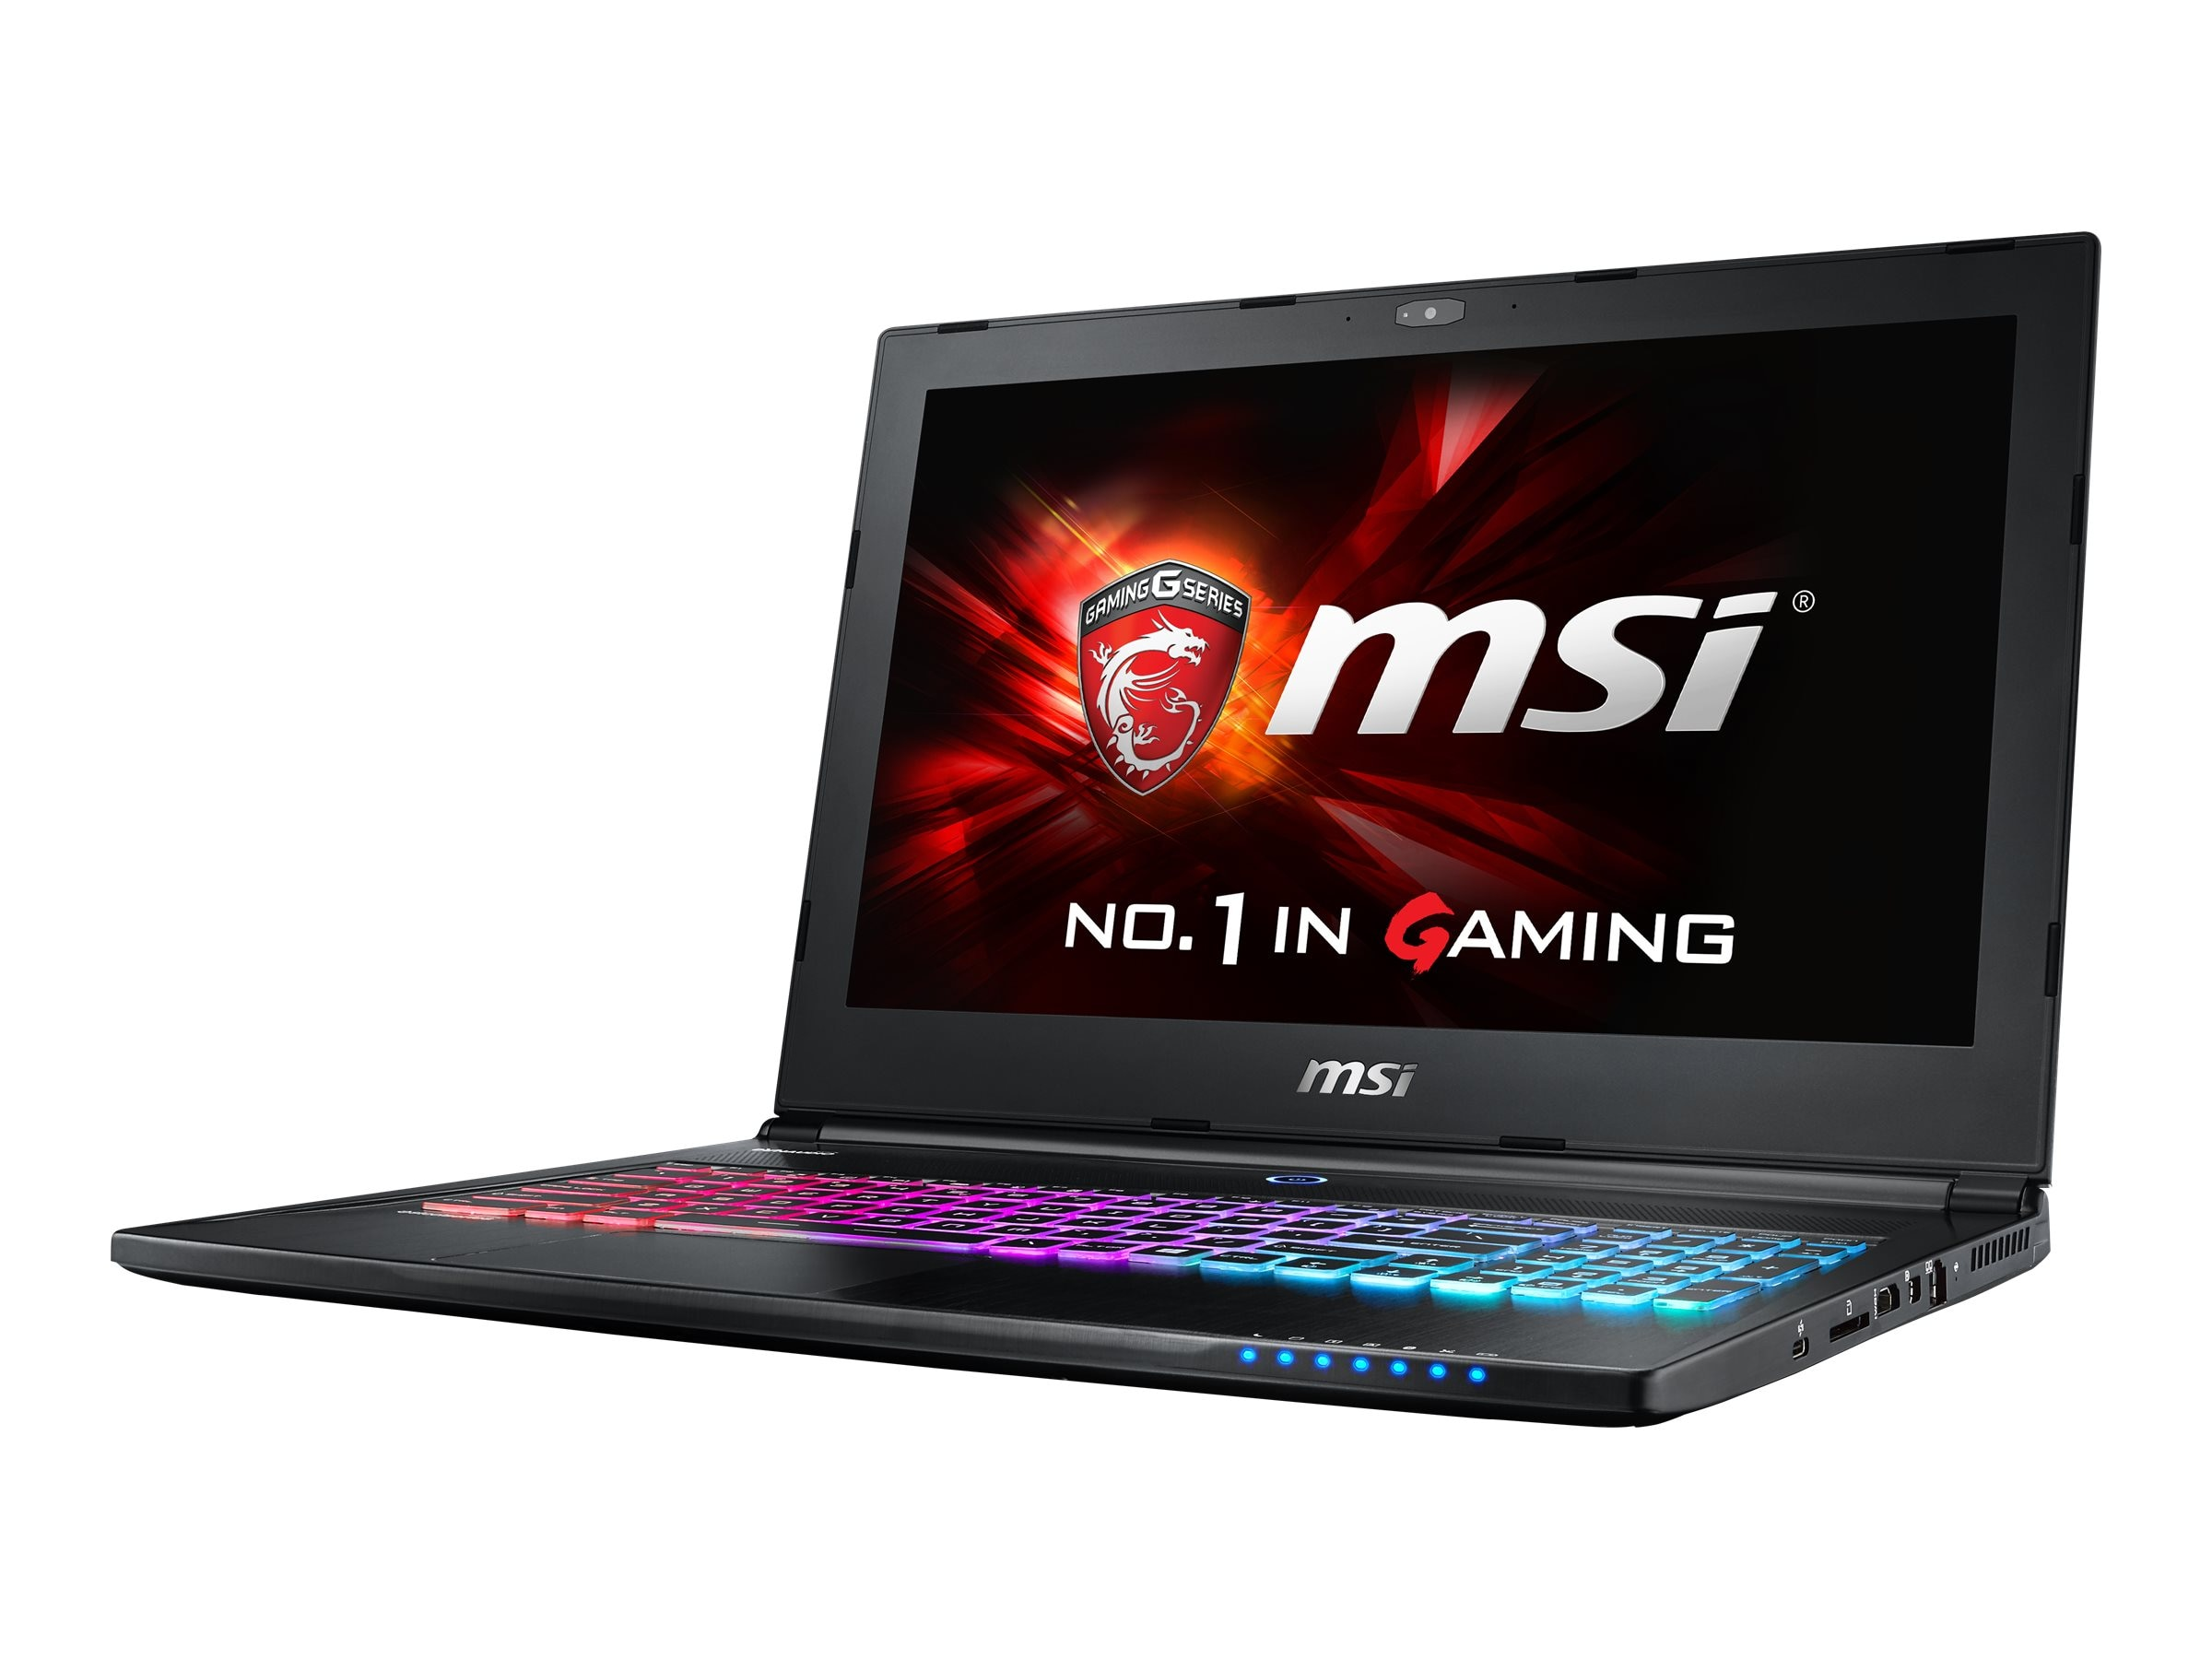 MSI GS60 Ghost Pro 4K-238 Core i7-6700HQ 2.6GHz 16GB 1TB+256GB SSD ac BT WC GTX 970M 15.6 4K W10, GS60 GHOST PRO 4K-238, 31391606, Notebooks